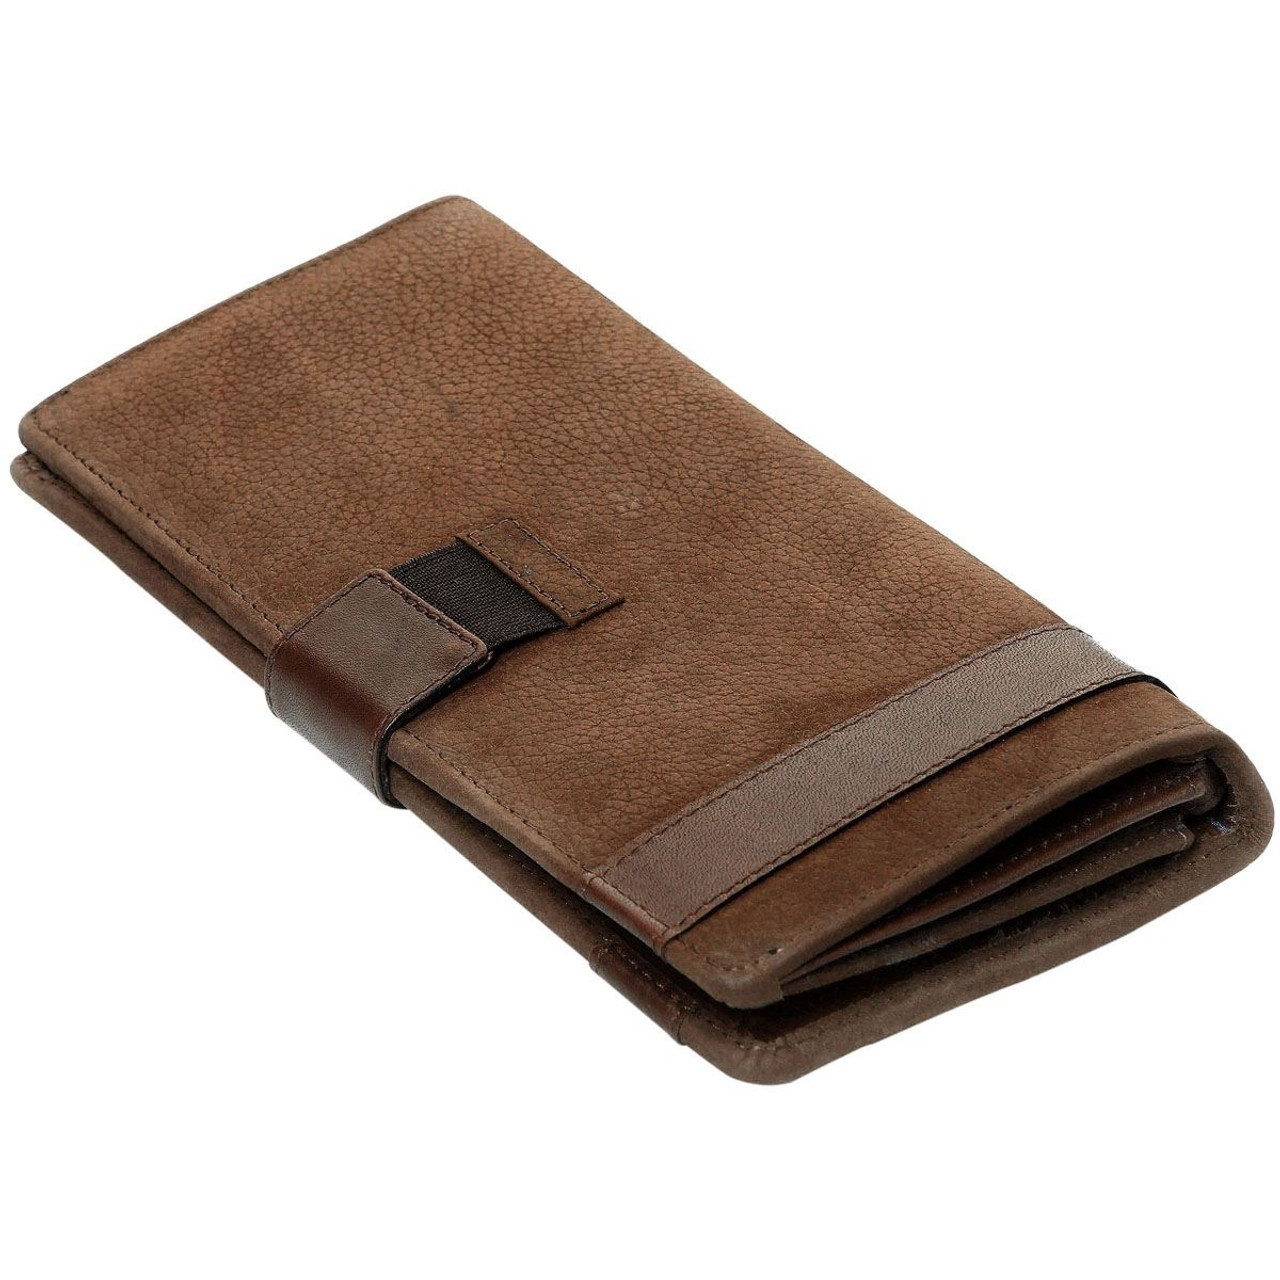 Dubarry Milltown Travel Organiser Wallet in Walnut